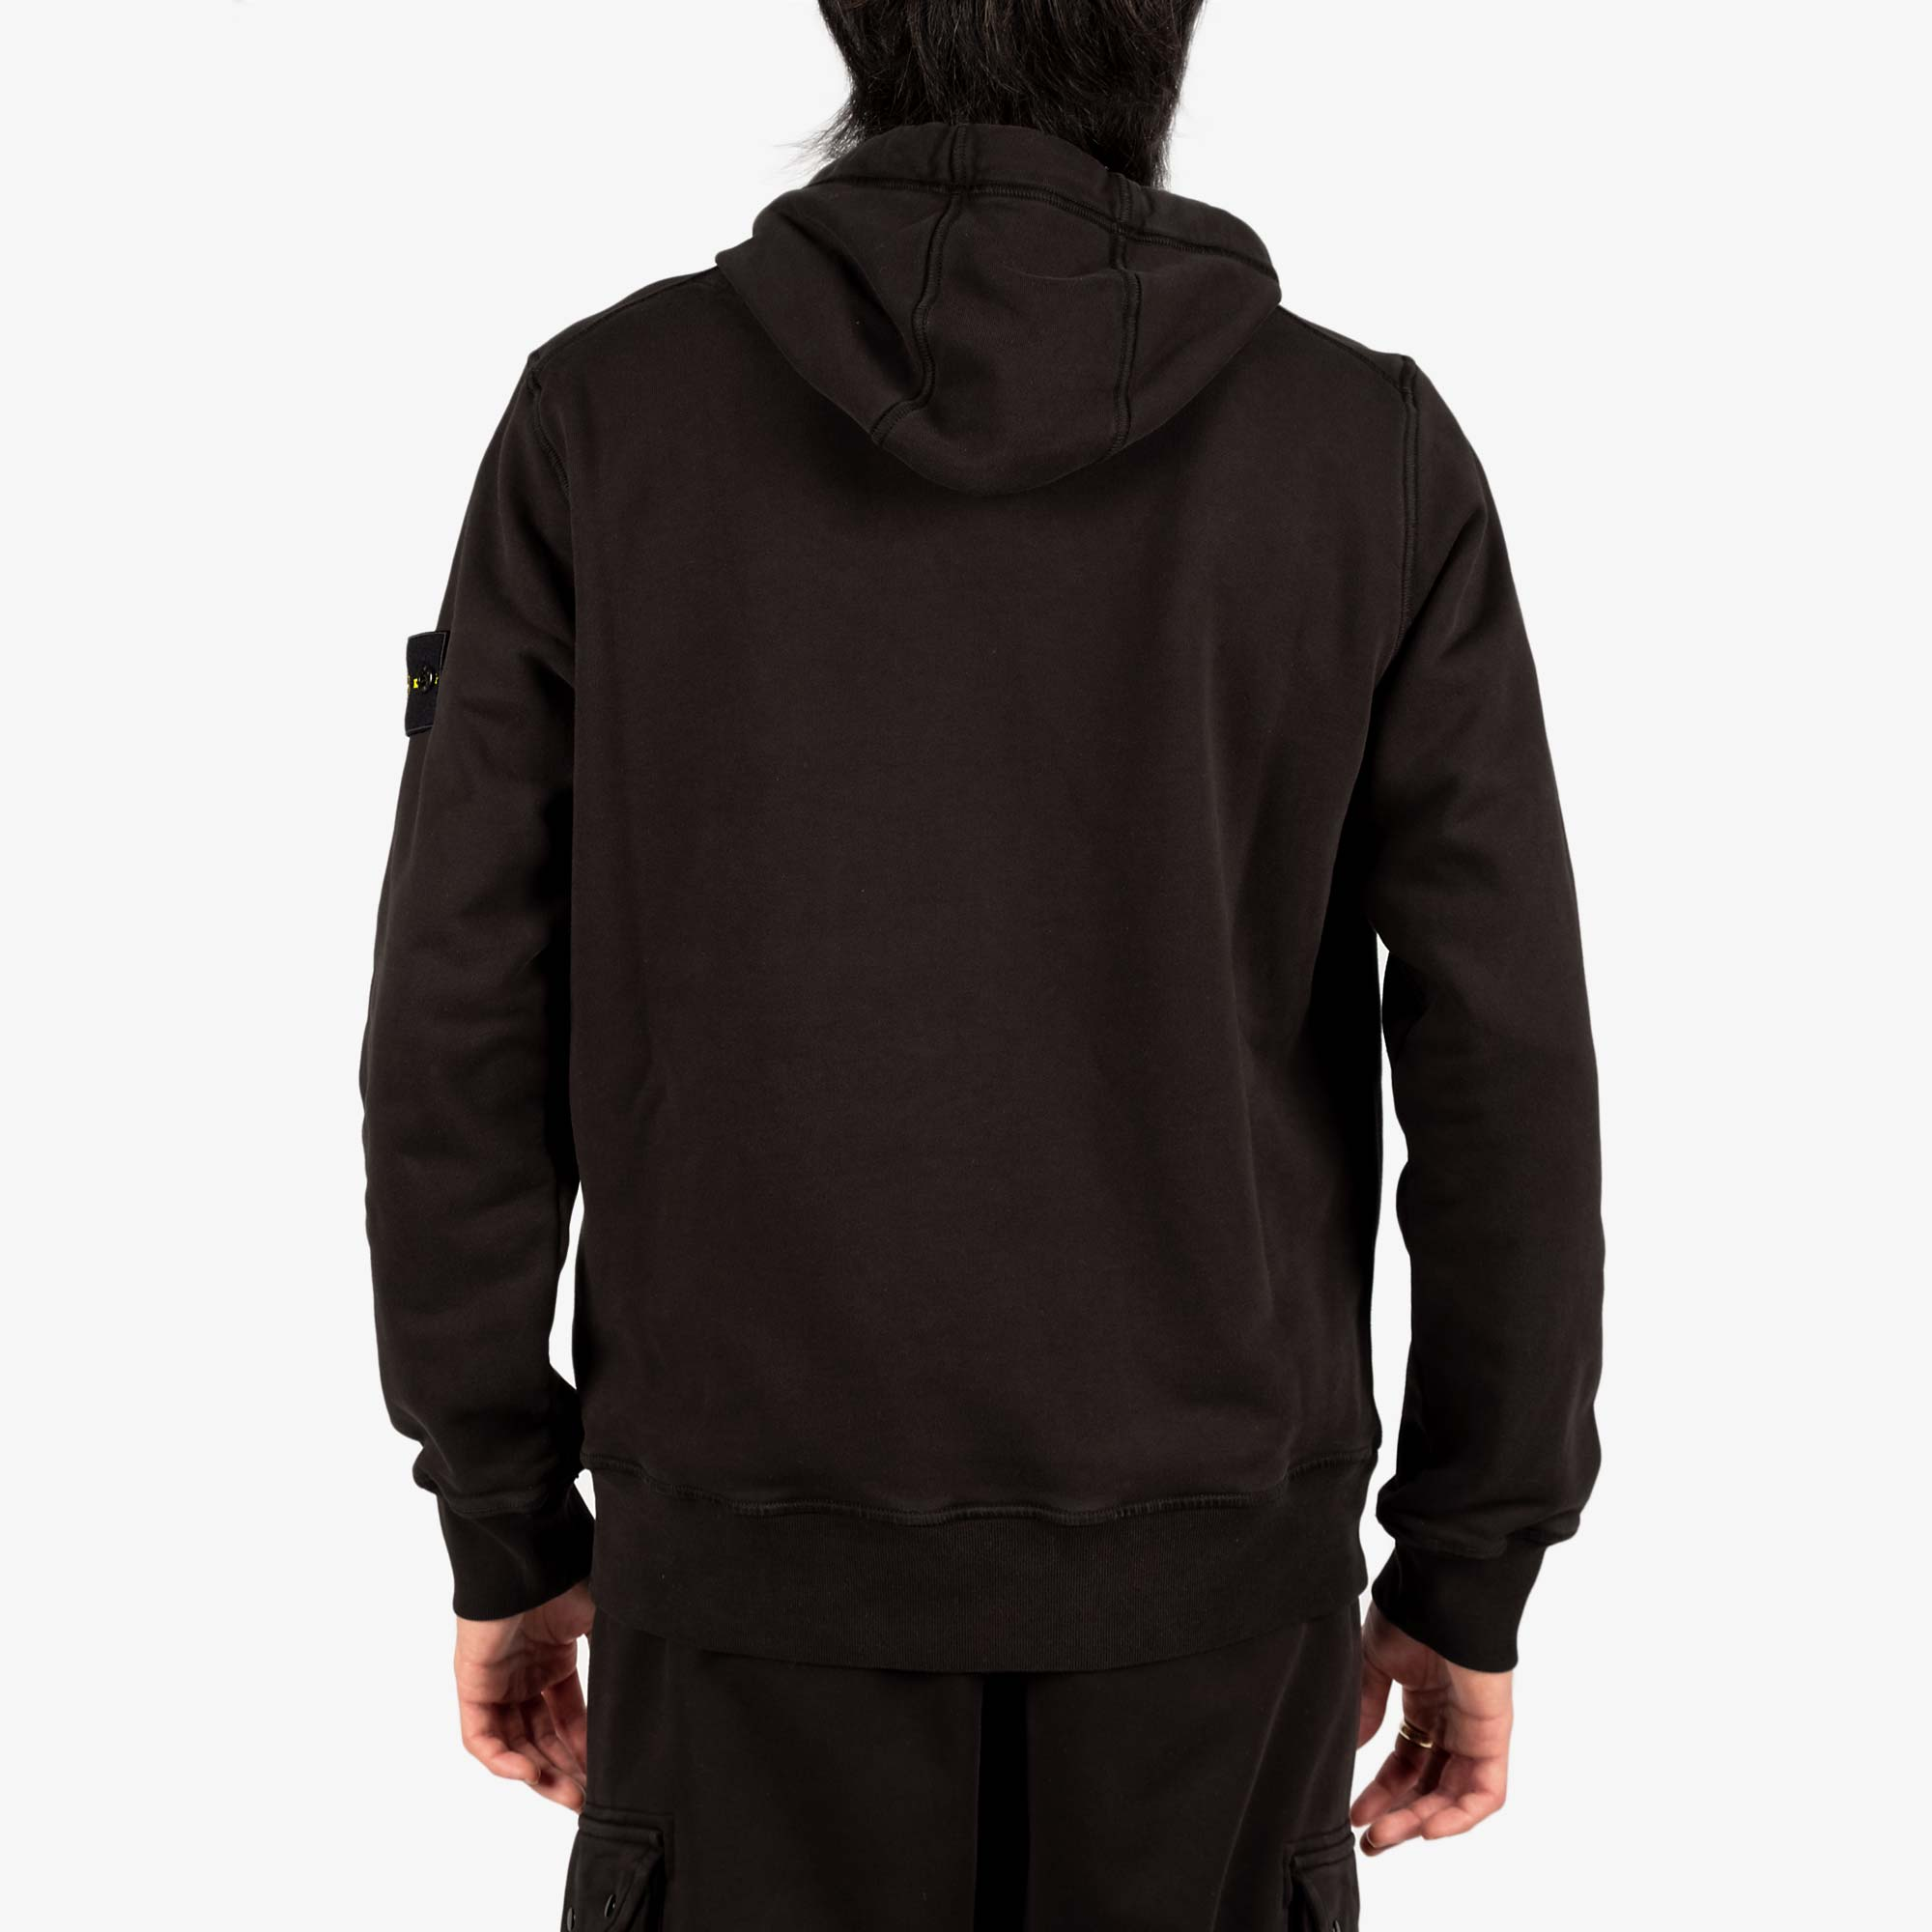 Stone Island Garment Dyed Hooded Sweat 741564151 - Black 8